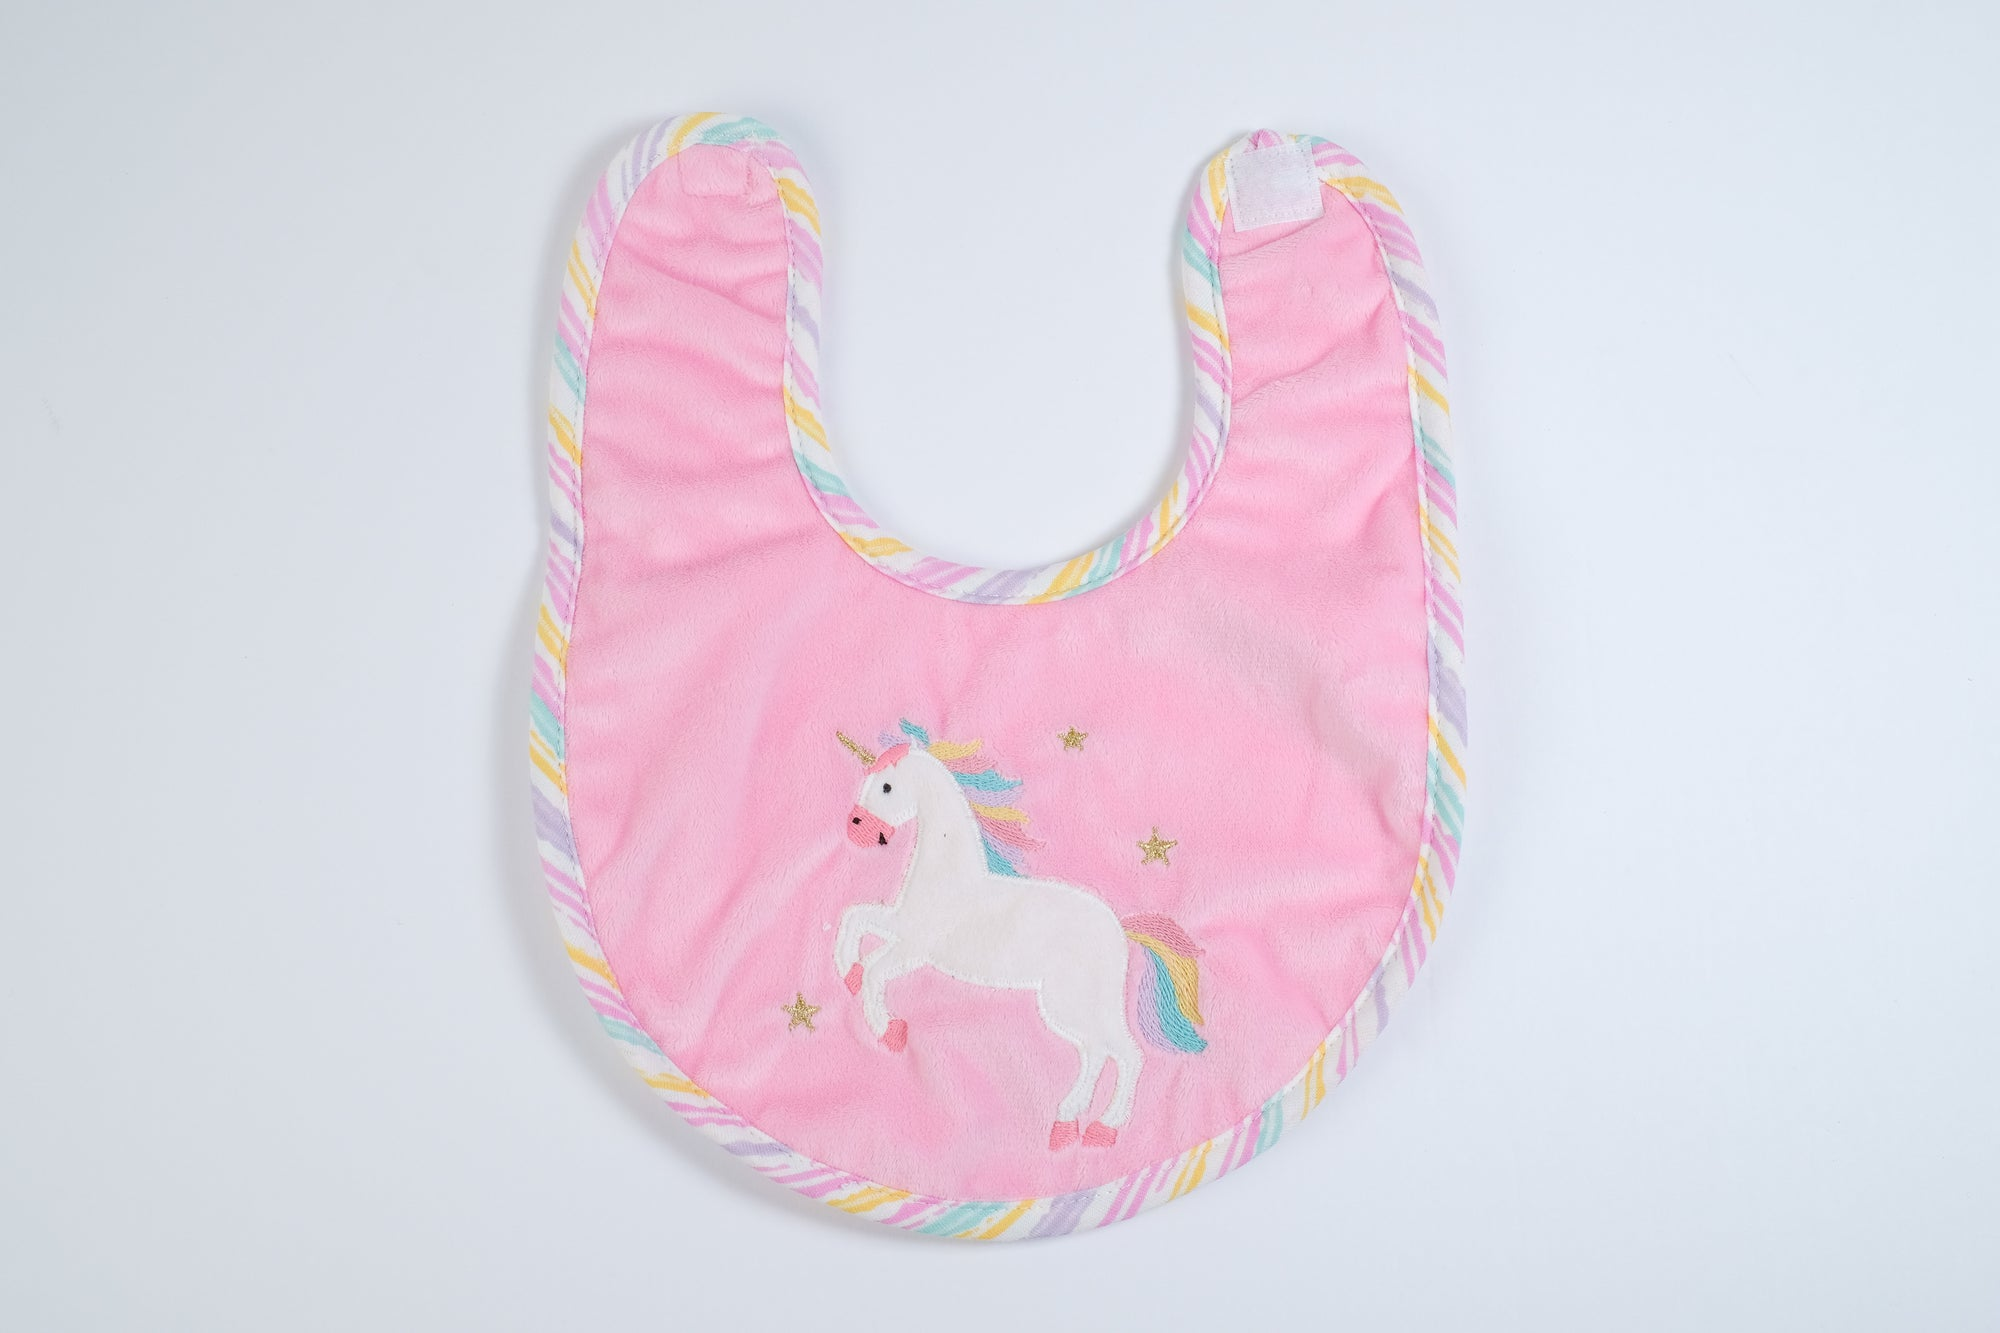 Trixie the Unicorn Bib